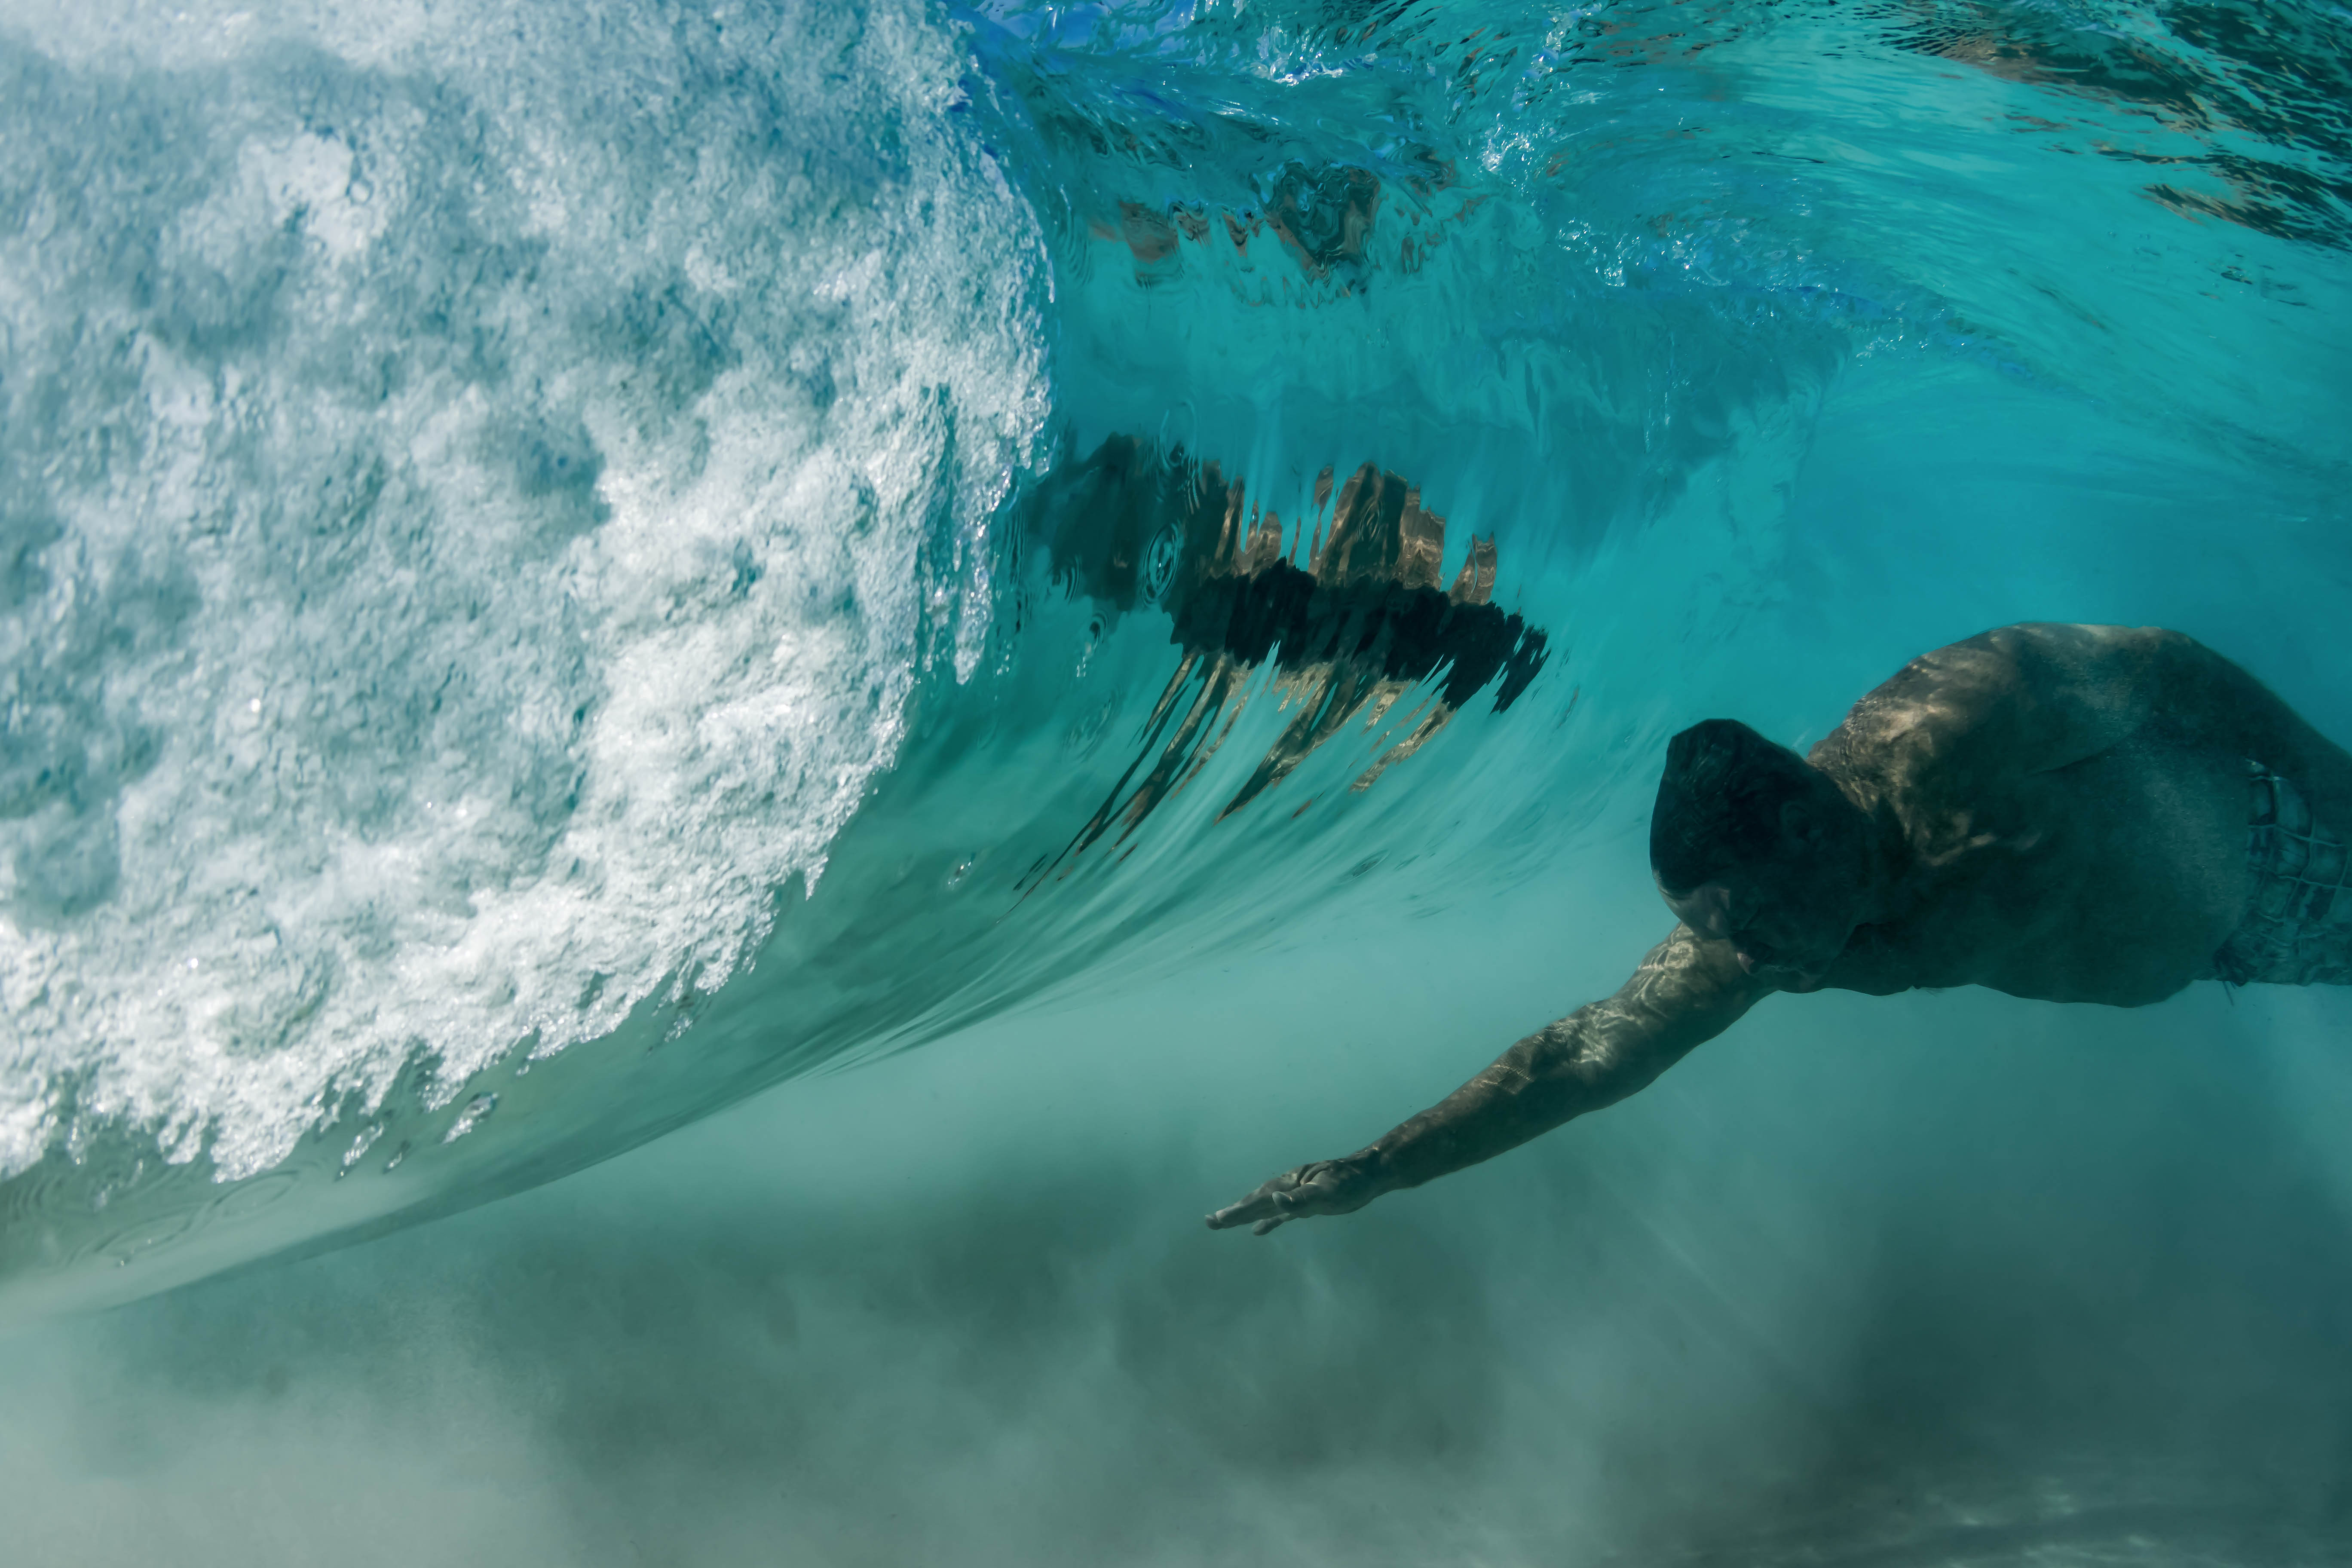 The stunning underwater shots show violent vortices venting from a breaking wave.